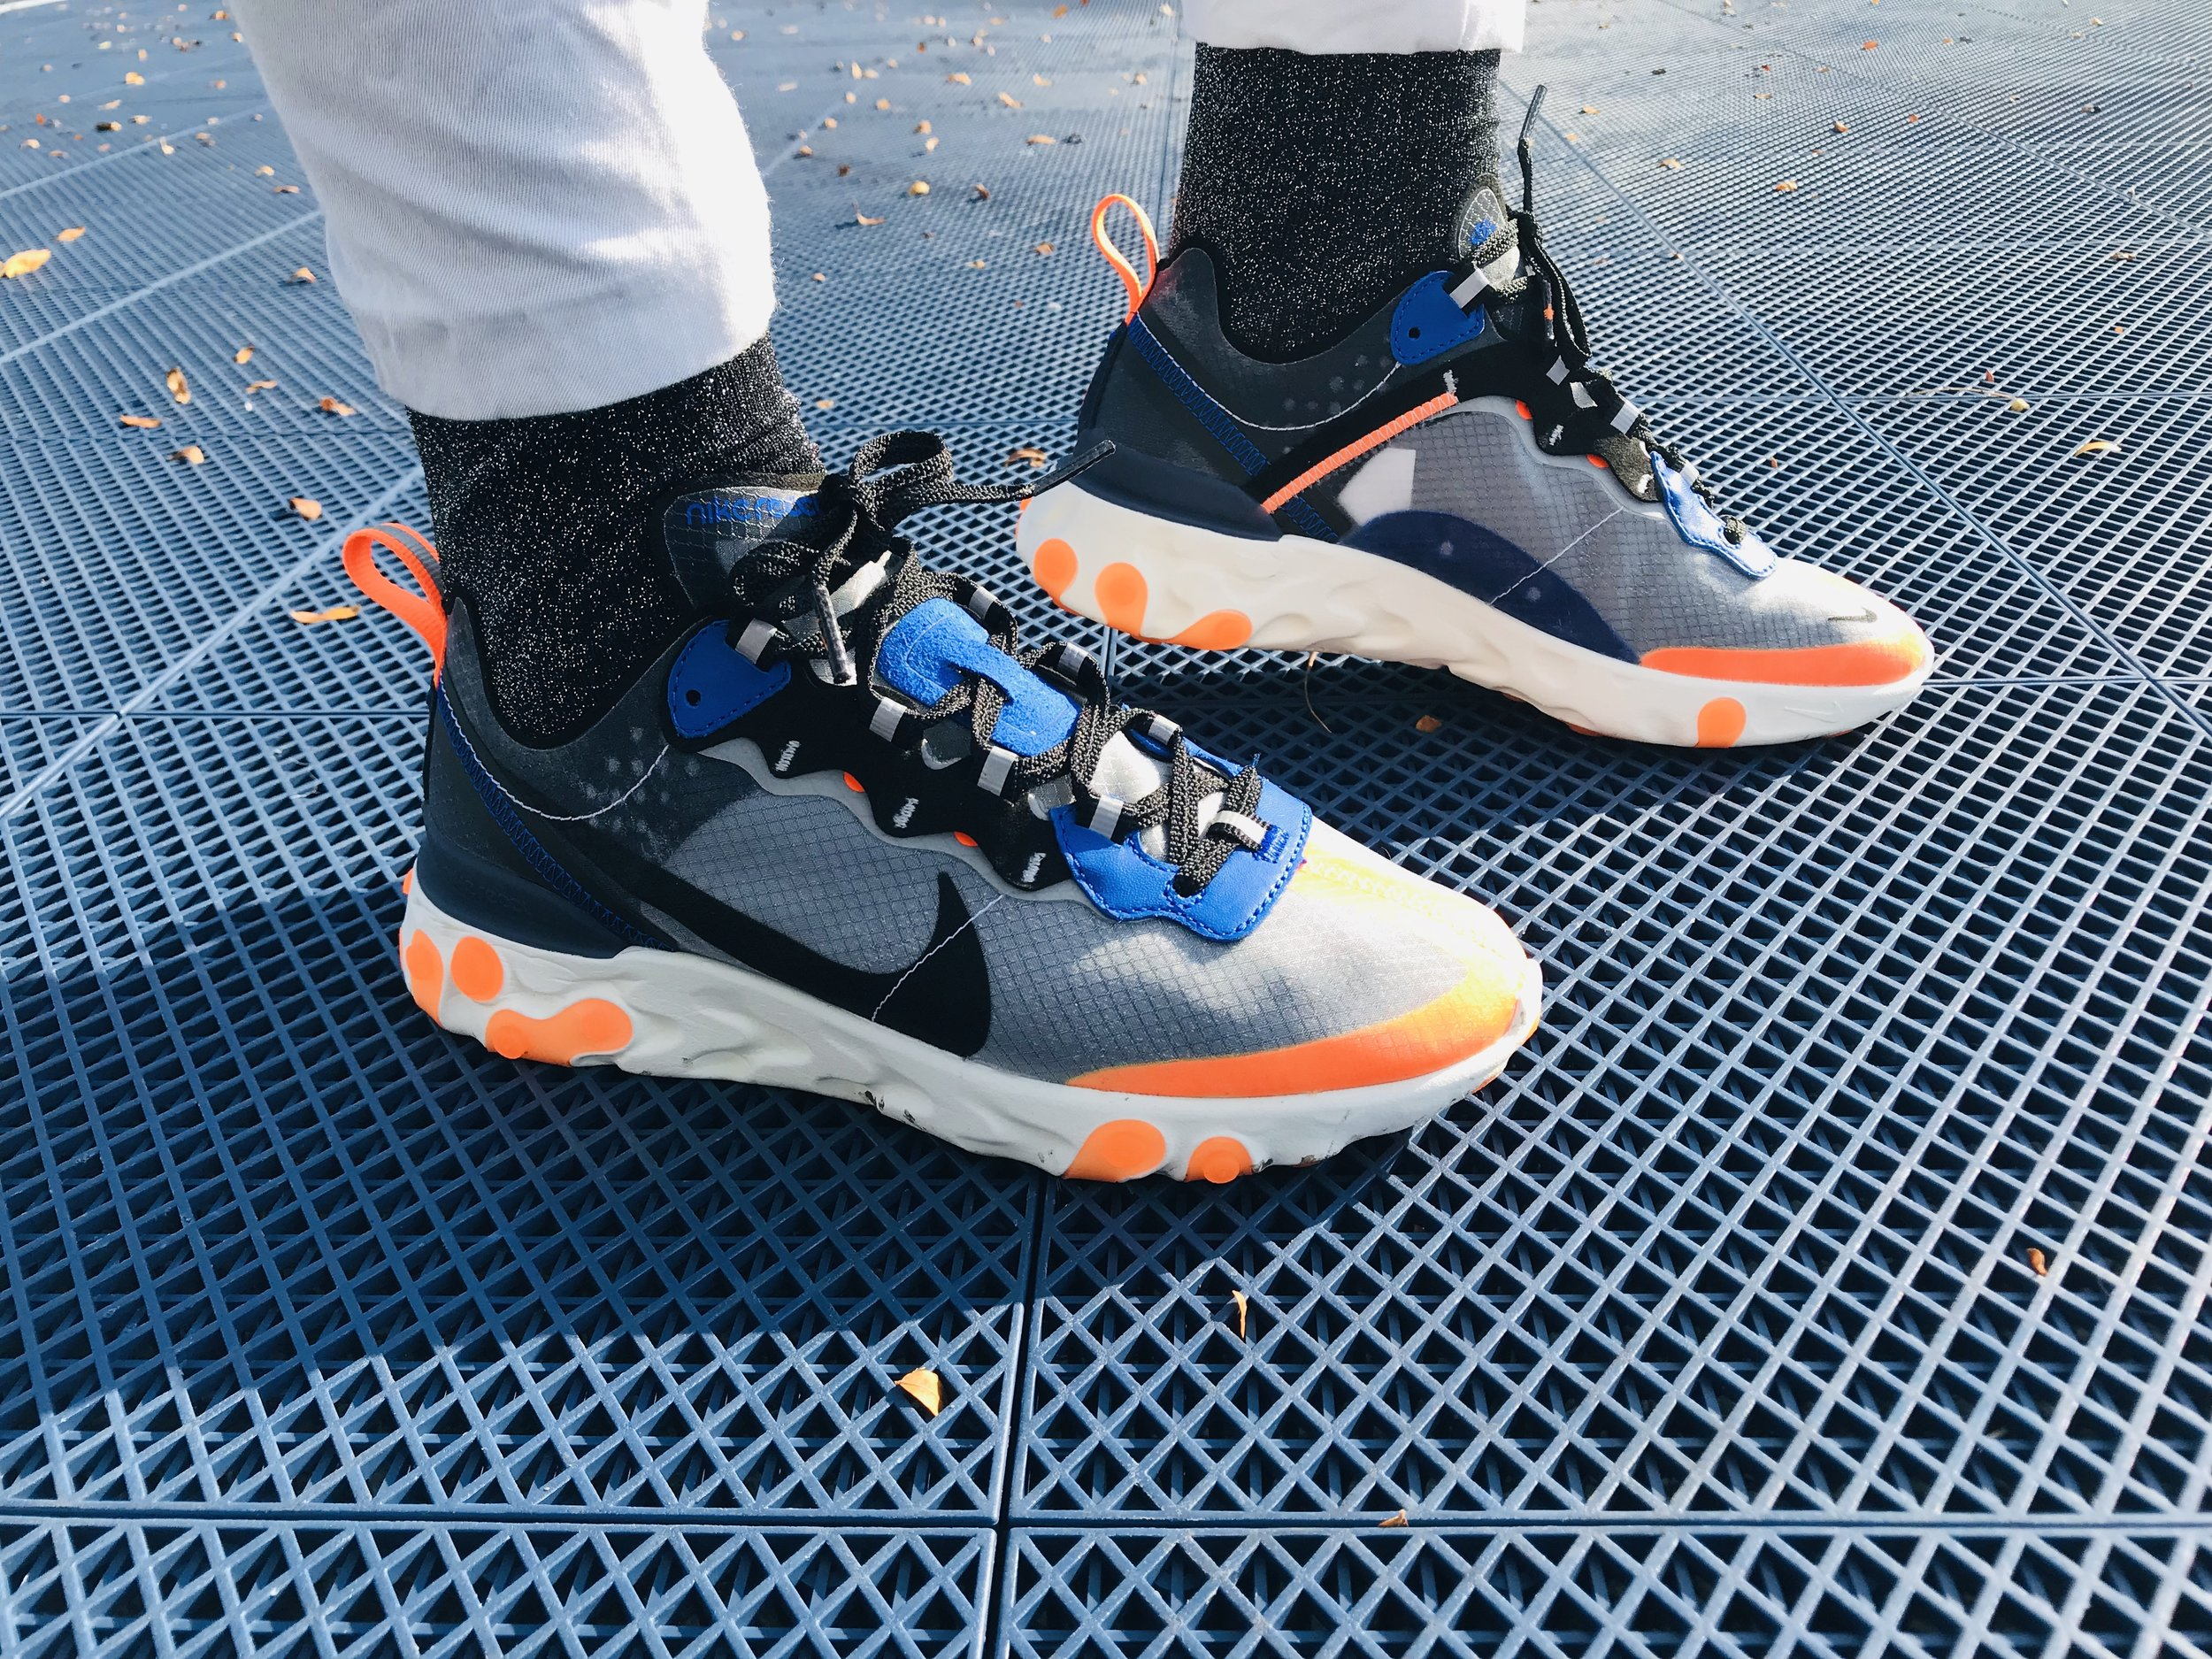 Socks With The Nike React Element 87